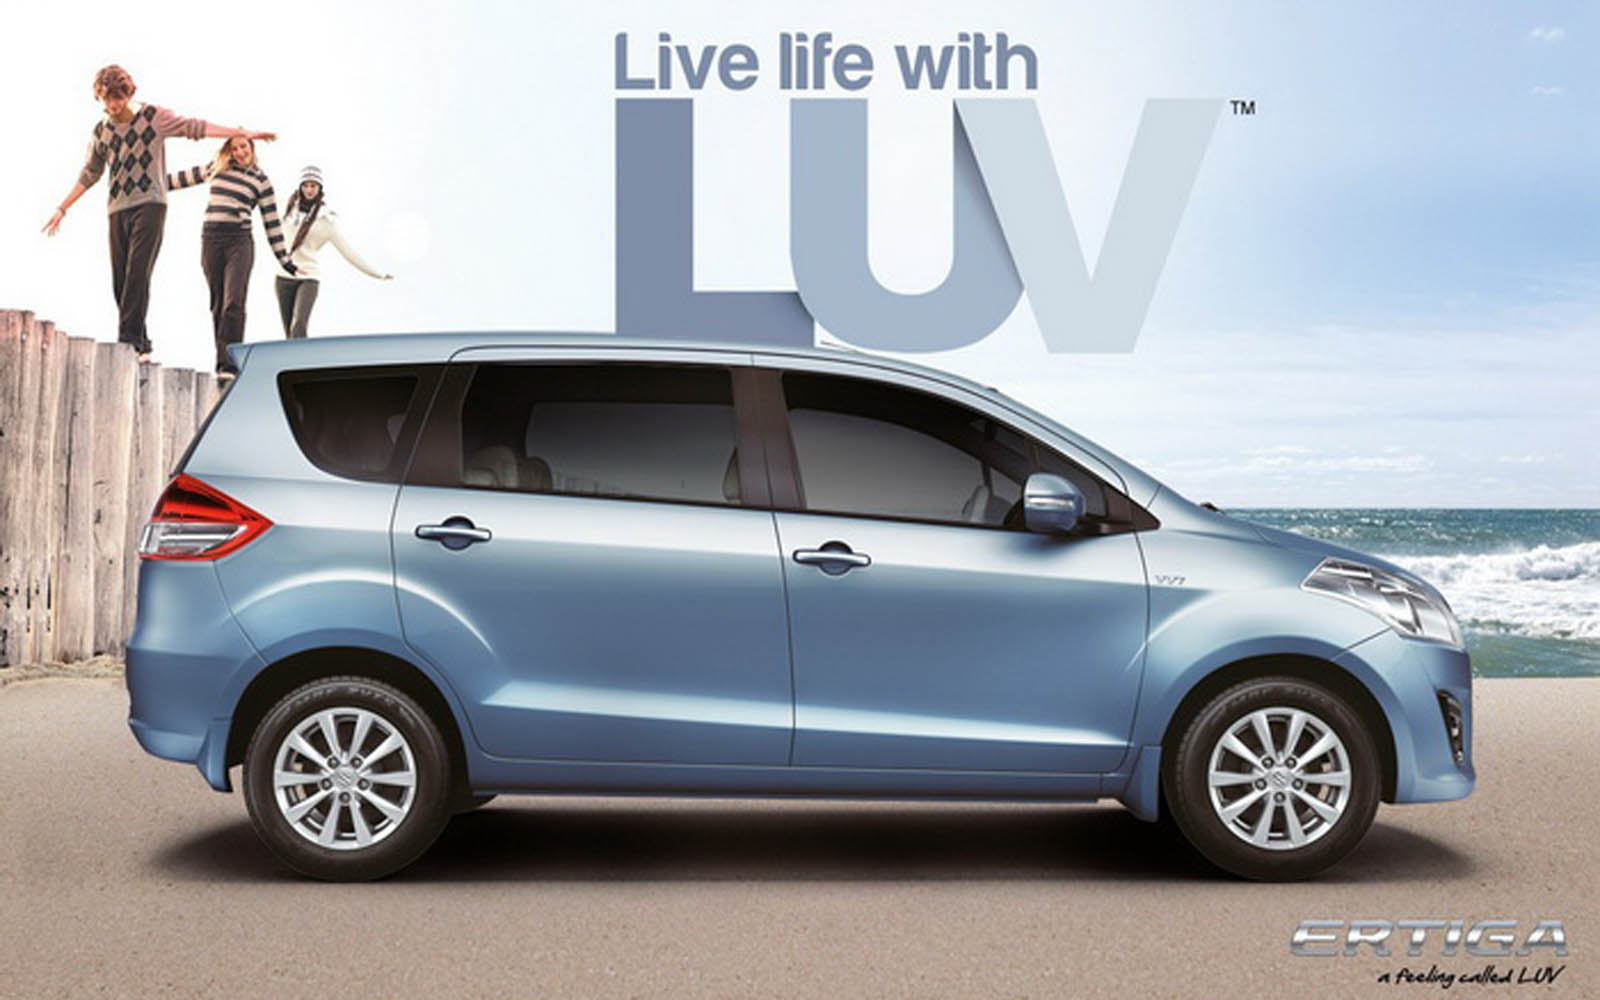 Wallpapers: Maruti Suzuki Ertiga Photos And Wallpapers